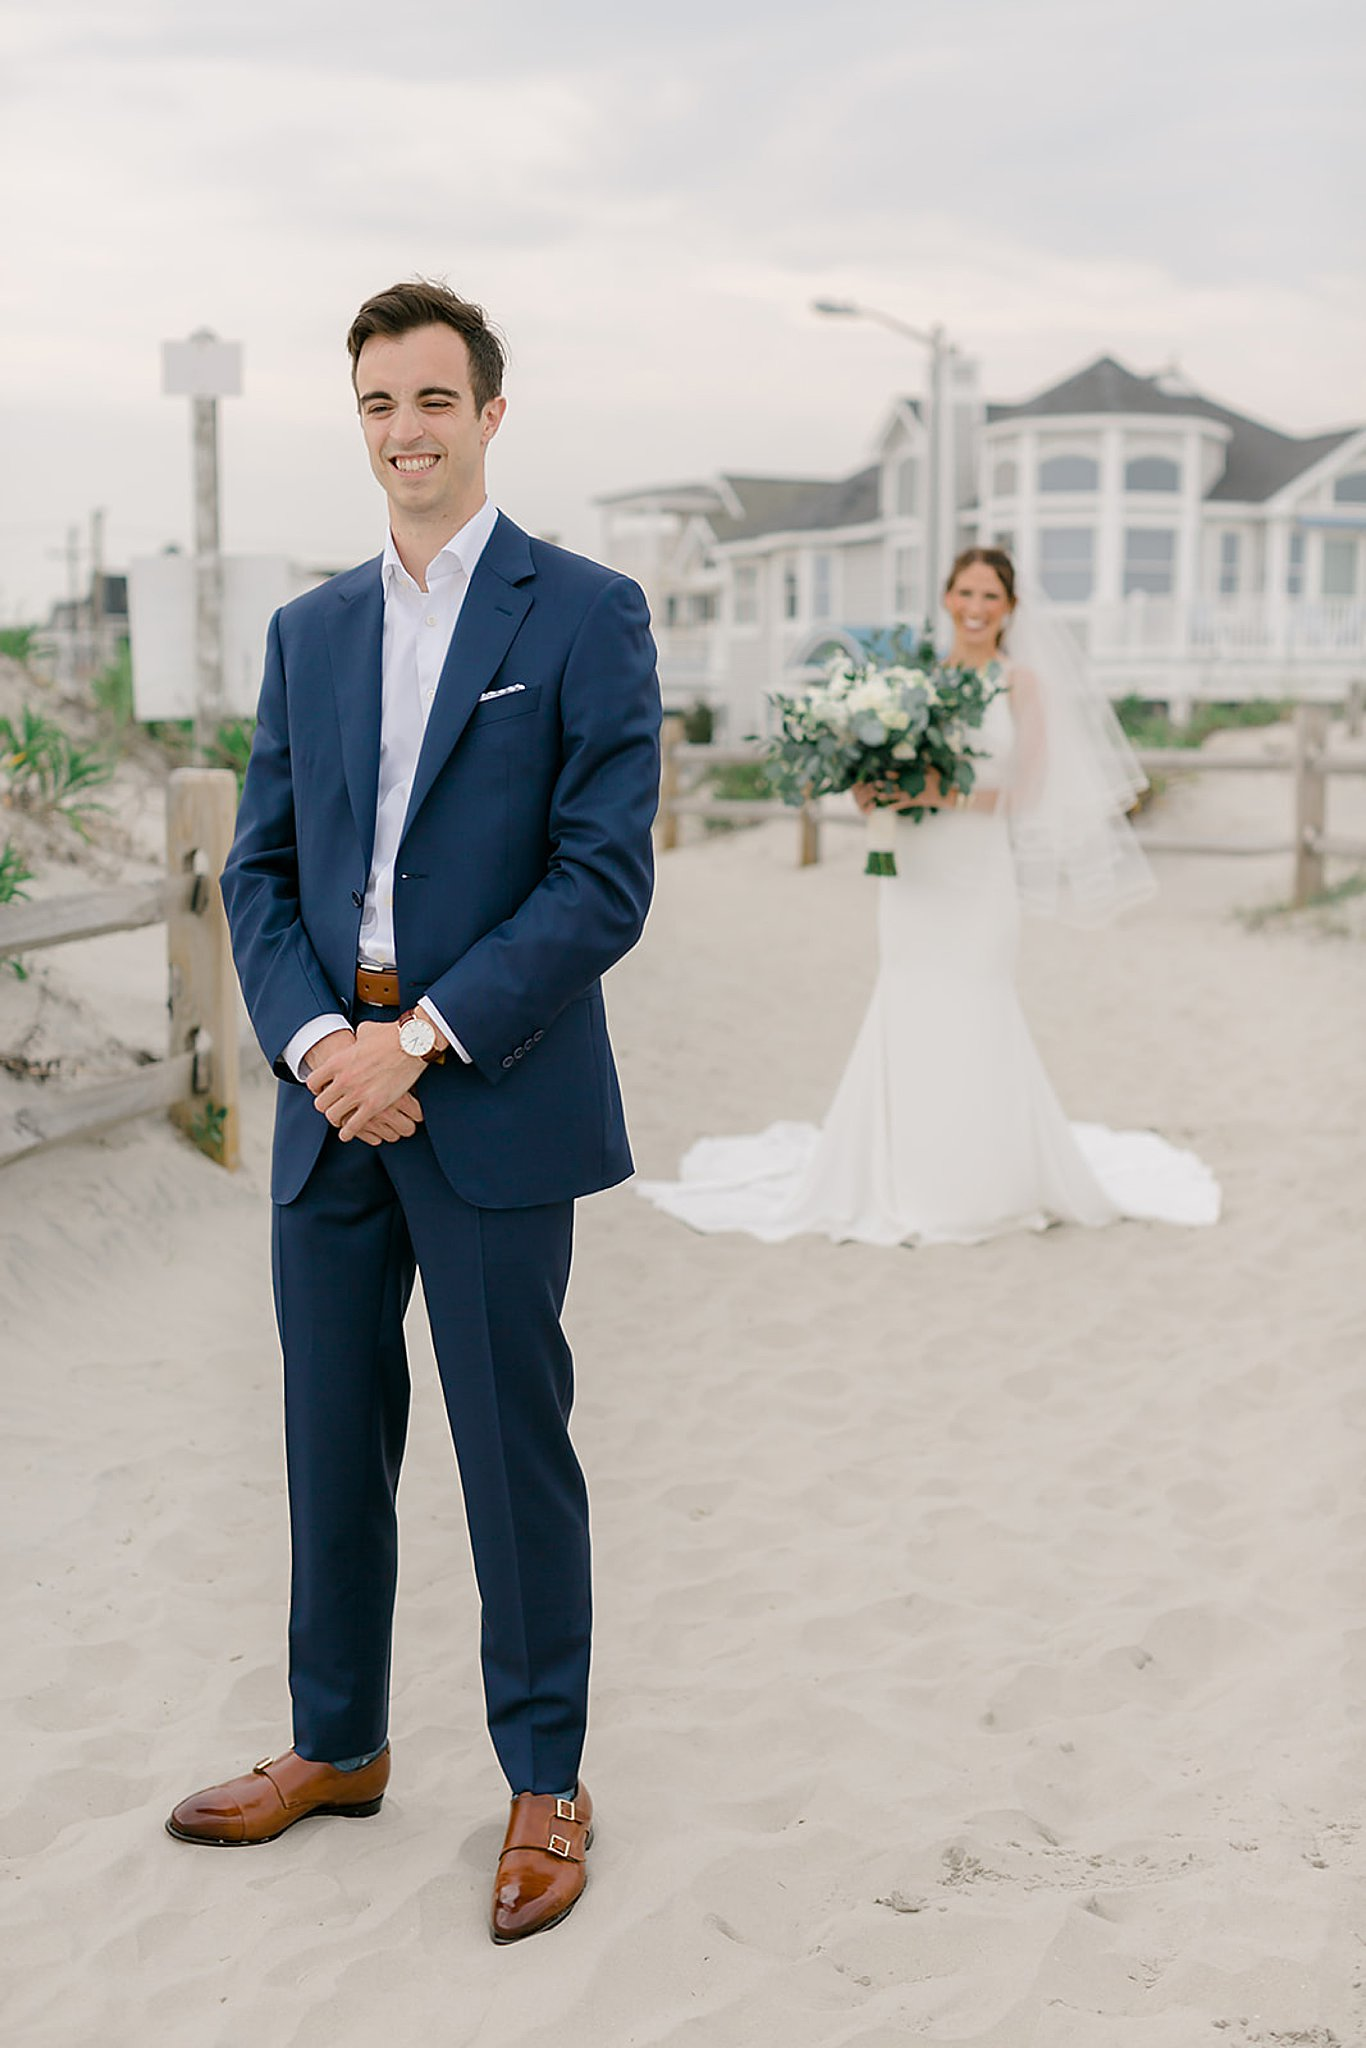 The Reeds at Shelter Haven Wedding Photography by Magdalena Studios KylieChristian 0009